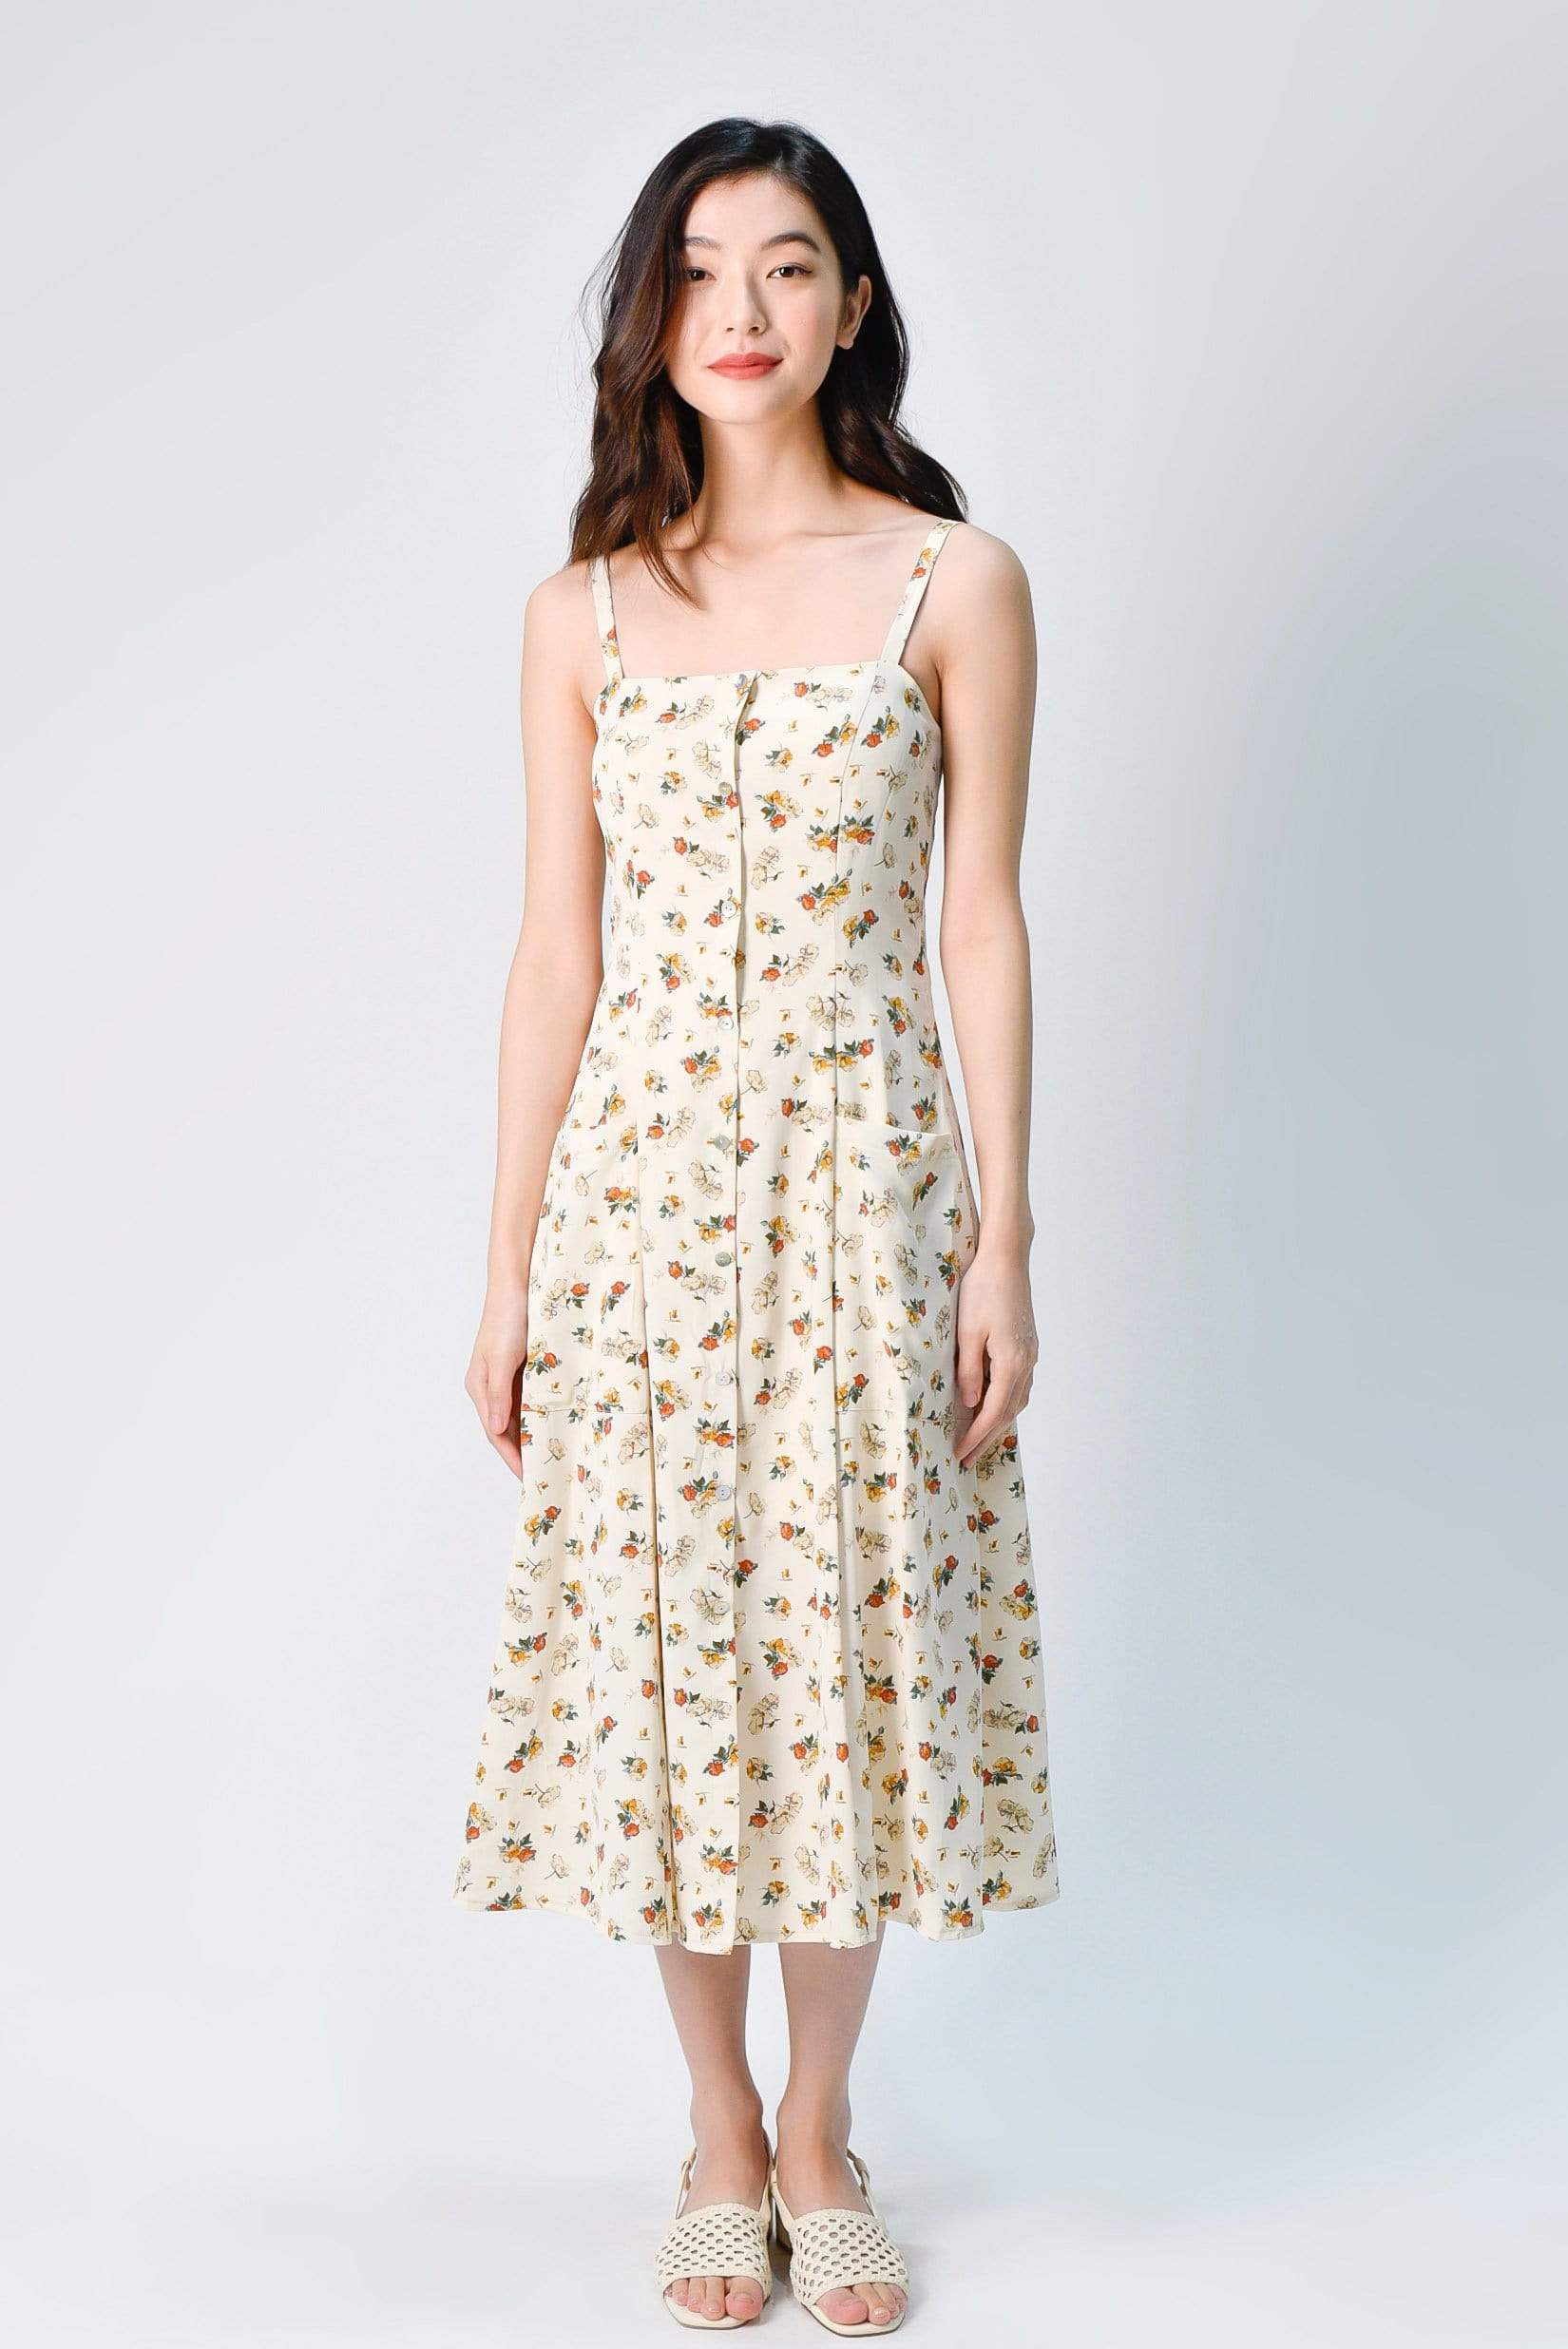 PENNIE THIN-STRAP POCKET DRESS IN CREAM FLORAL